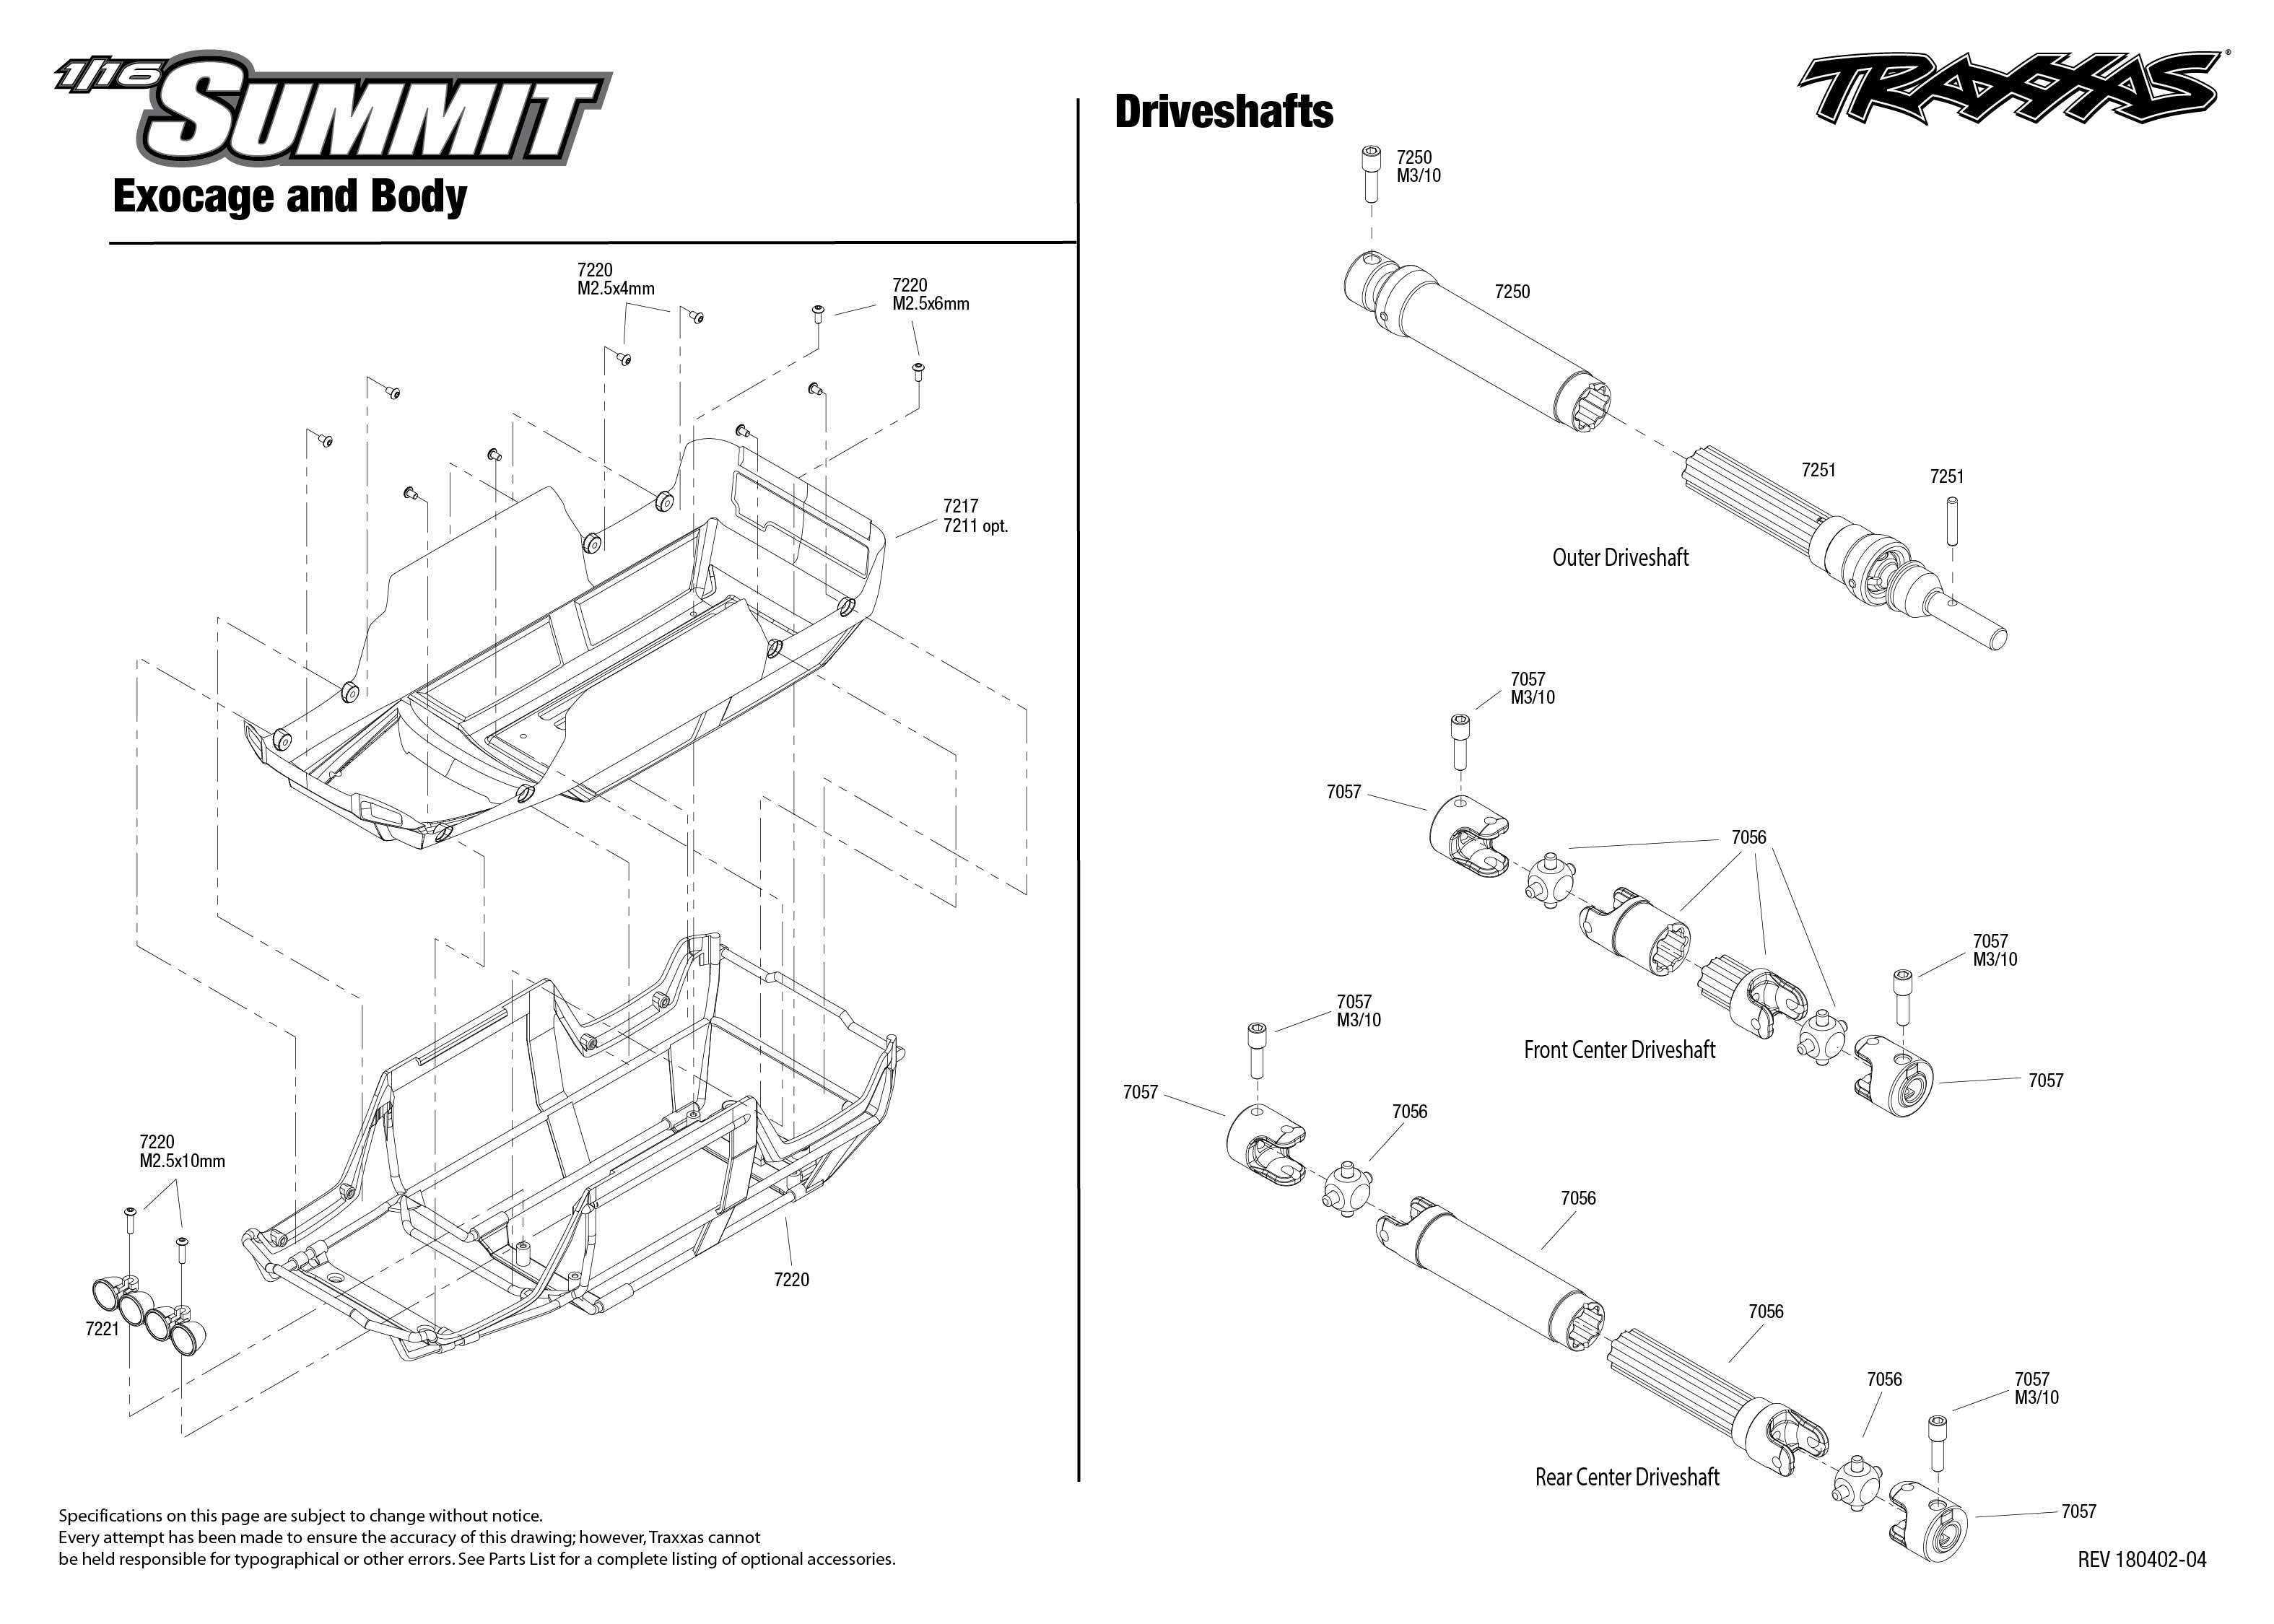 1/16 Summit (72054-5) Driveshafts Assembly Exploded View